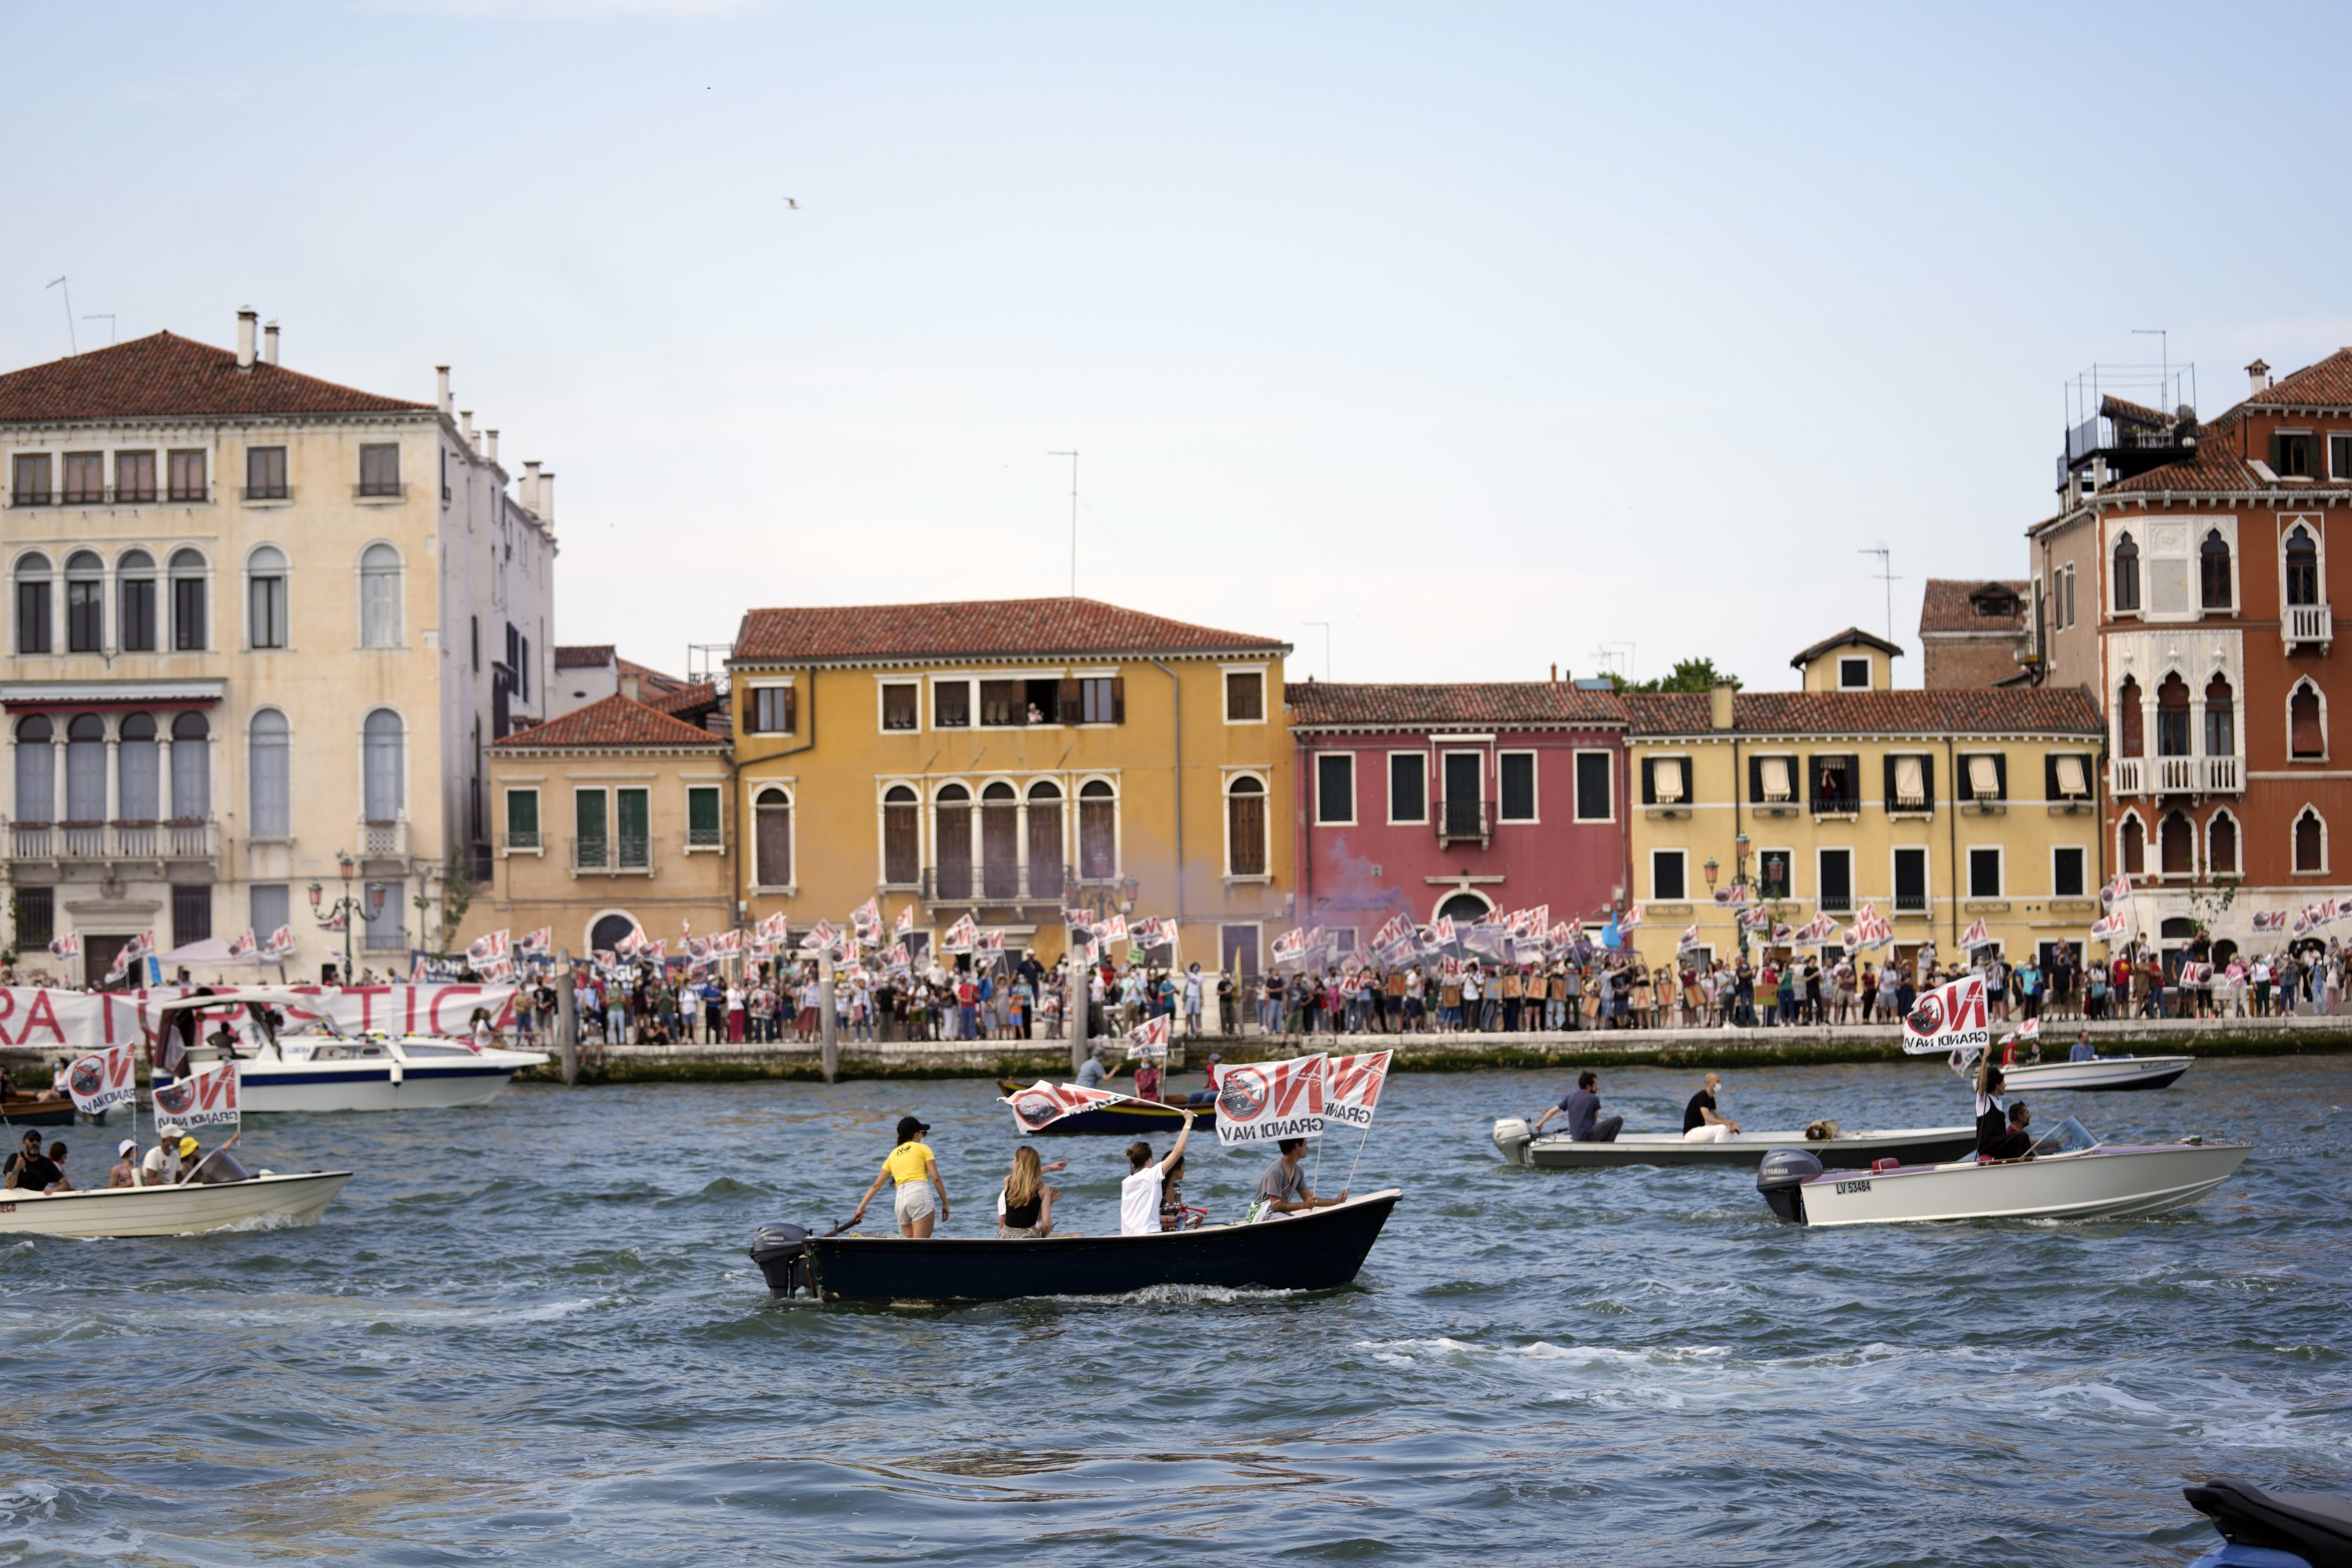 'No Big Ships' activists stage a protest as the MSC Orchestra cruise ship leaves Venice, Italy, June 5, 2021. (AP Photo)